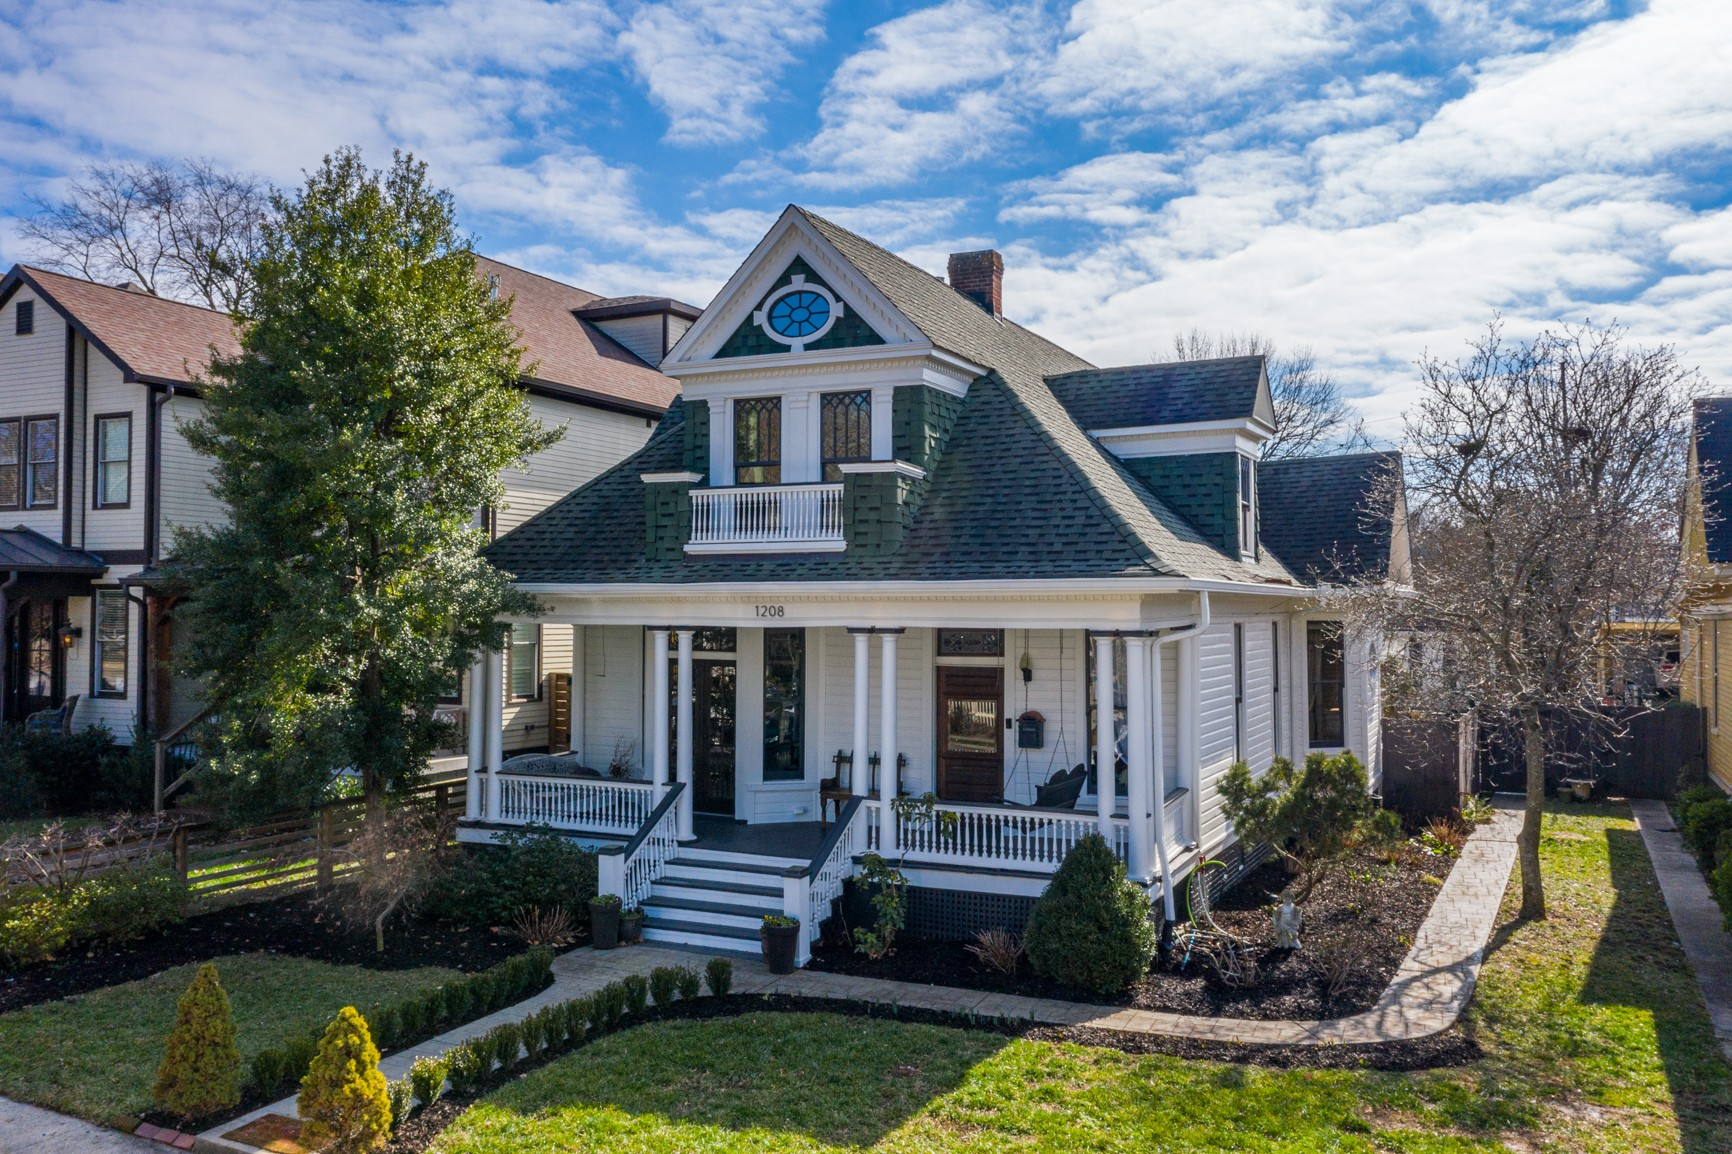 Historical Victorian artistically renovated beauty on sought-after Gartland Avenue in East Nashville. Second Floor is a private master suite with vaulted ceilings, study, fireplace and gorgeous master bath. Backyard is a botanical garden complete with Koi pond and outdoor dining under the pergola!  Kitchen renovation includes an Italian live gas stove, custom copper hood and walnut, zinc and marble countertops. Upgrade list is extensive!!  Plus just a short walk to 5 Points!